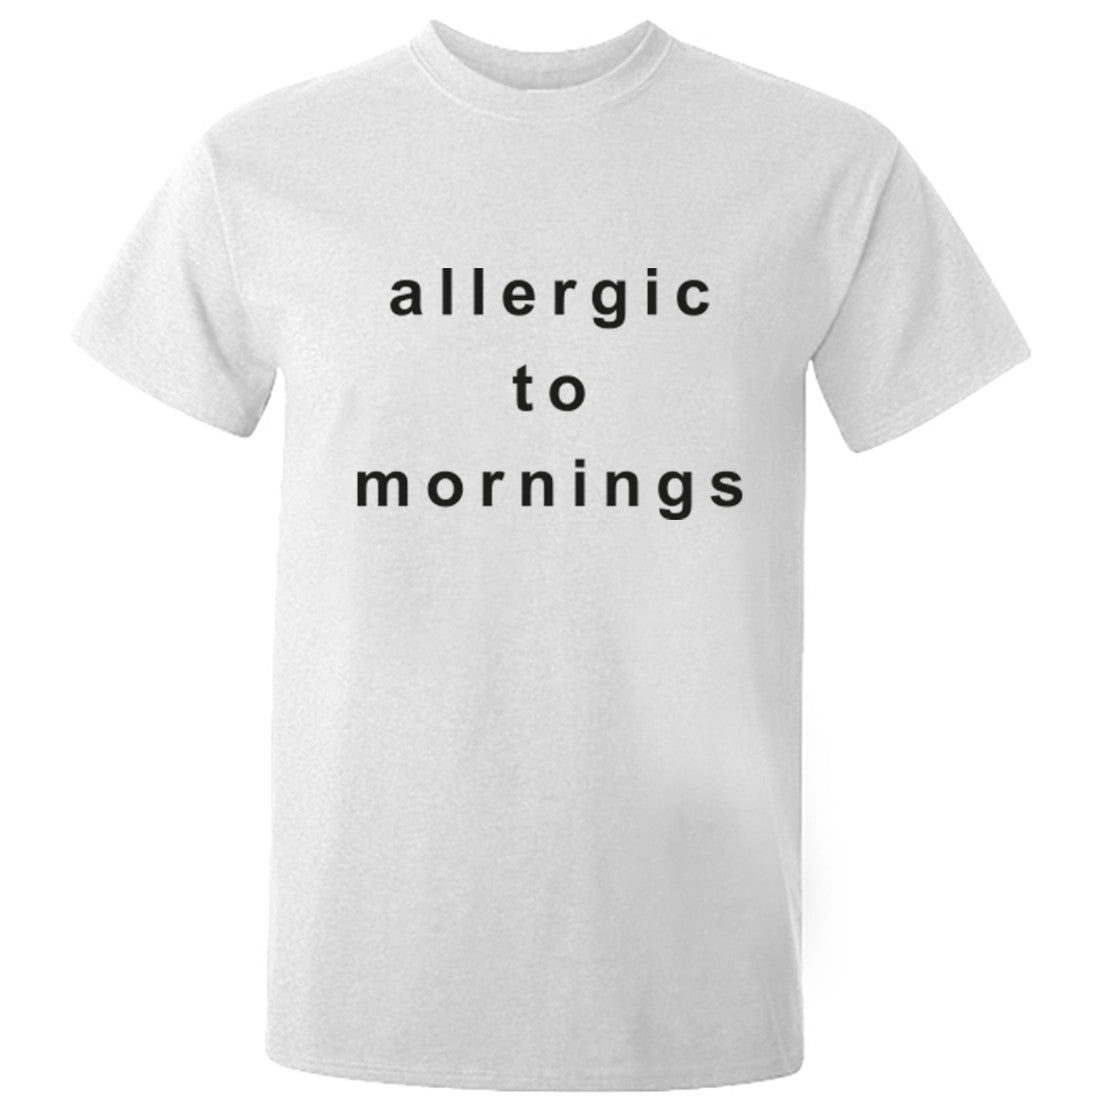 Allergic To Mornings Unisex Fit T-Shirt K1234